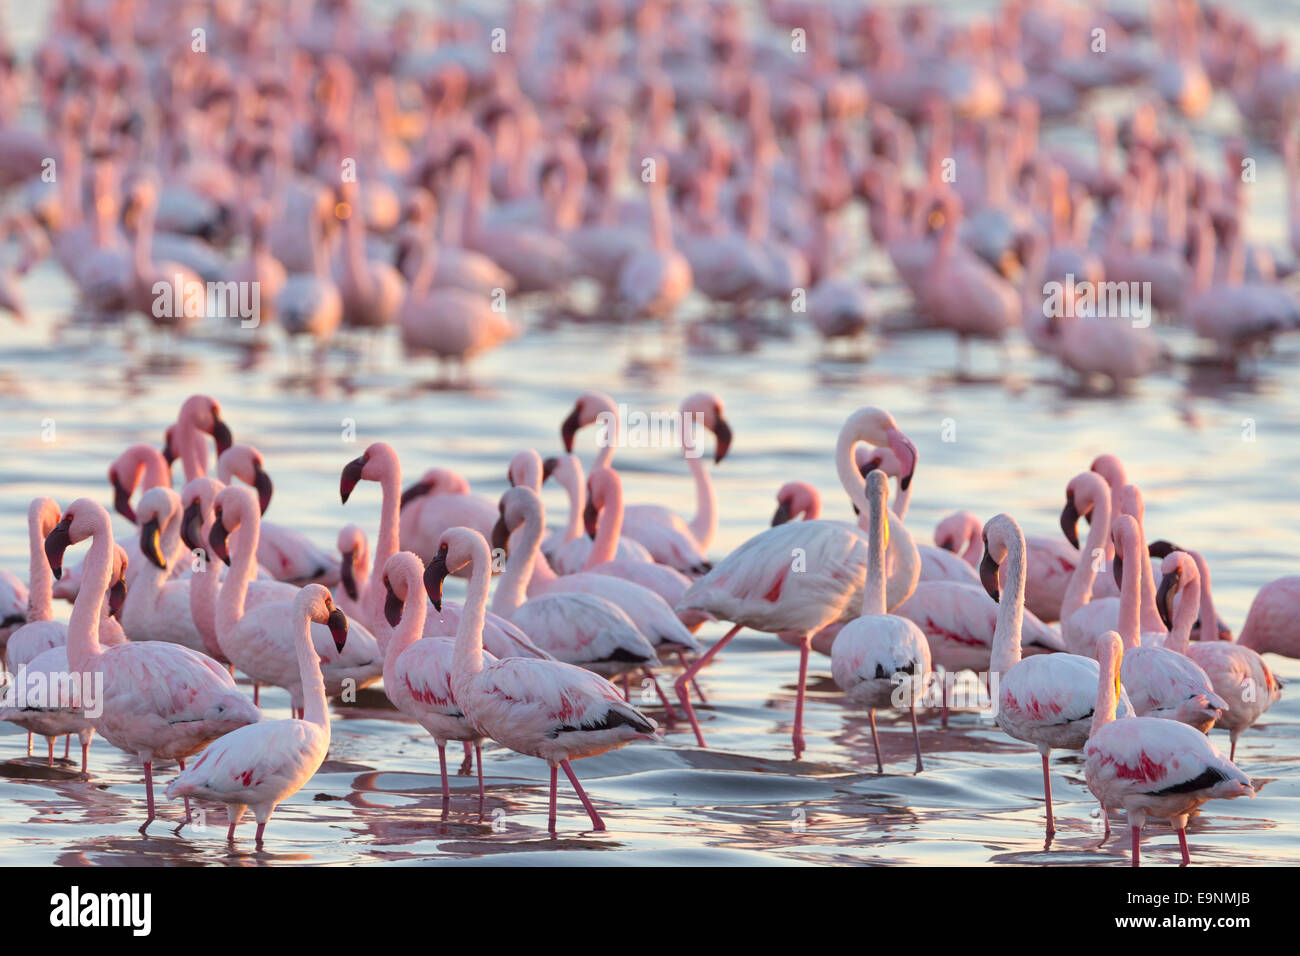 Lesser flamingoes (Phoenicopterus minor), Walvis Bay Lagoon, Namibia, Africa - Stock Image